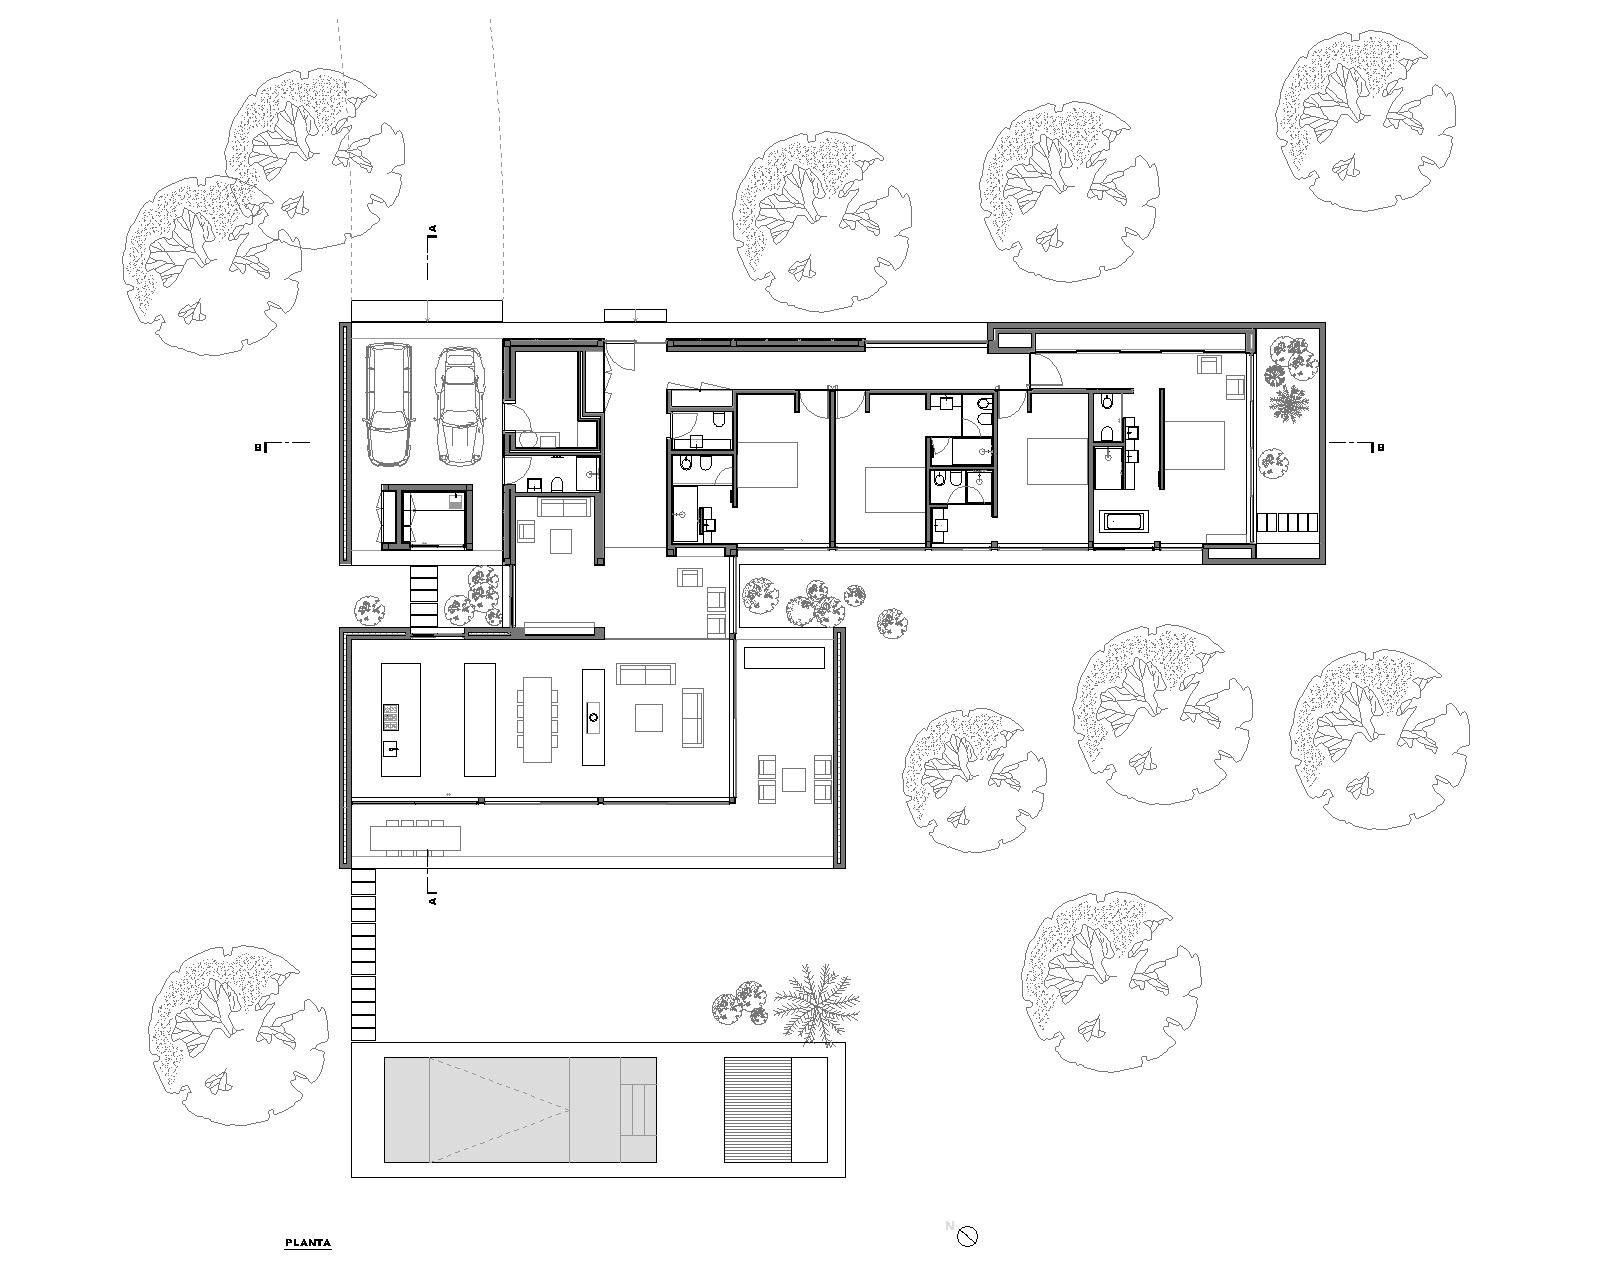 Gallery Of Comporta House Rrj Arquitectos 19 Modern House Plans House Floor Plans House Layouts